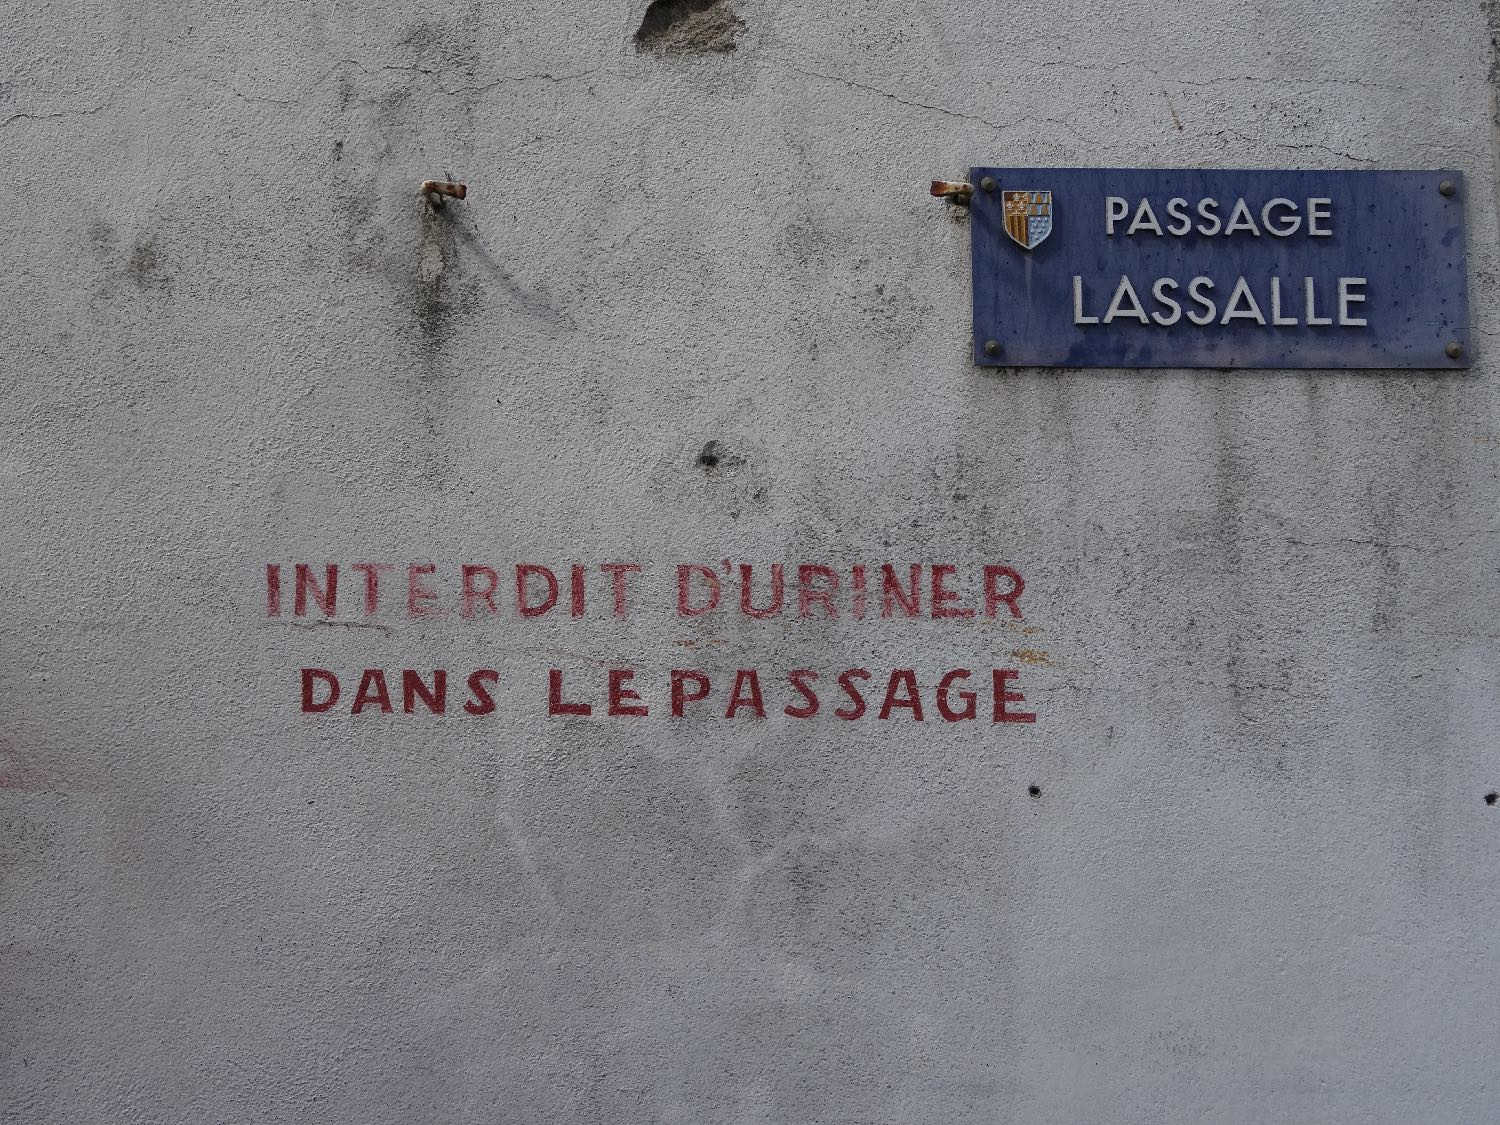 Defense d'uriner dans le passage | Defense of urinating on the streetFrance | photo sandrine cohen